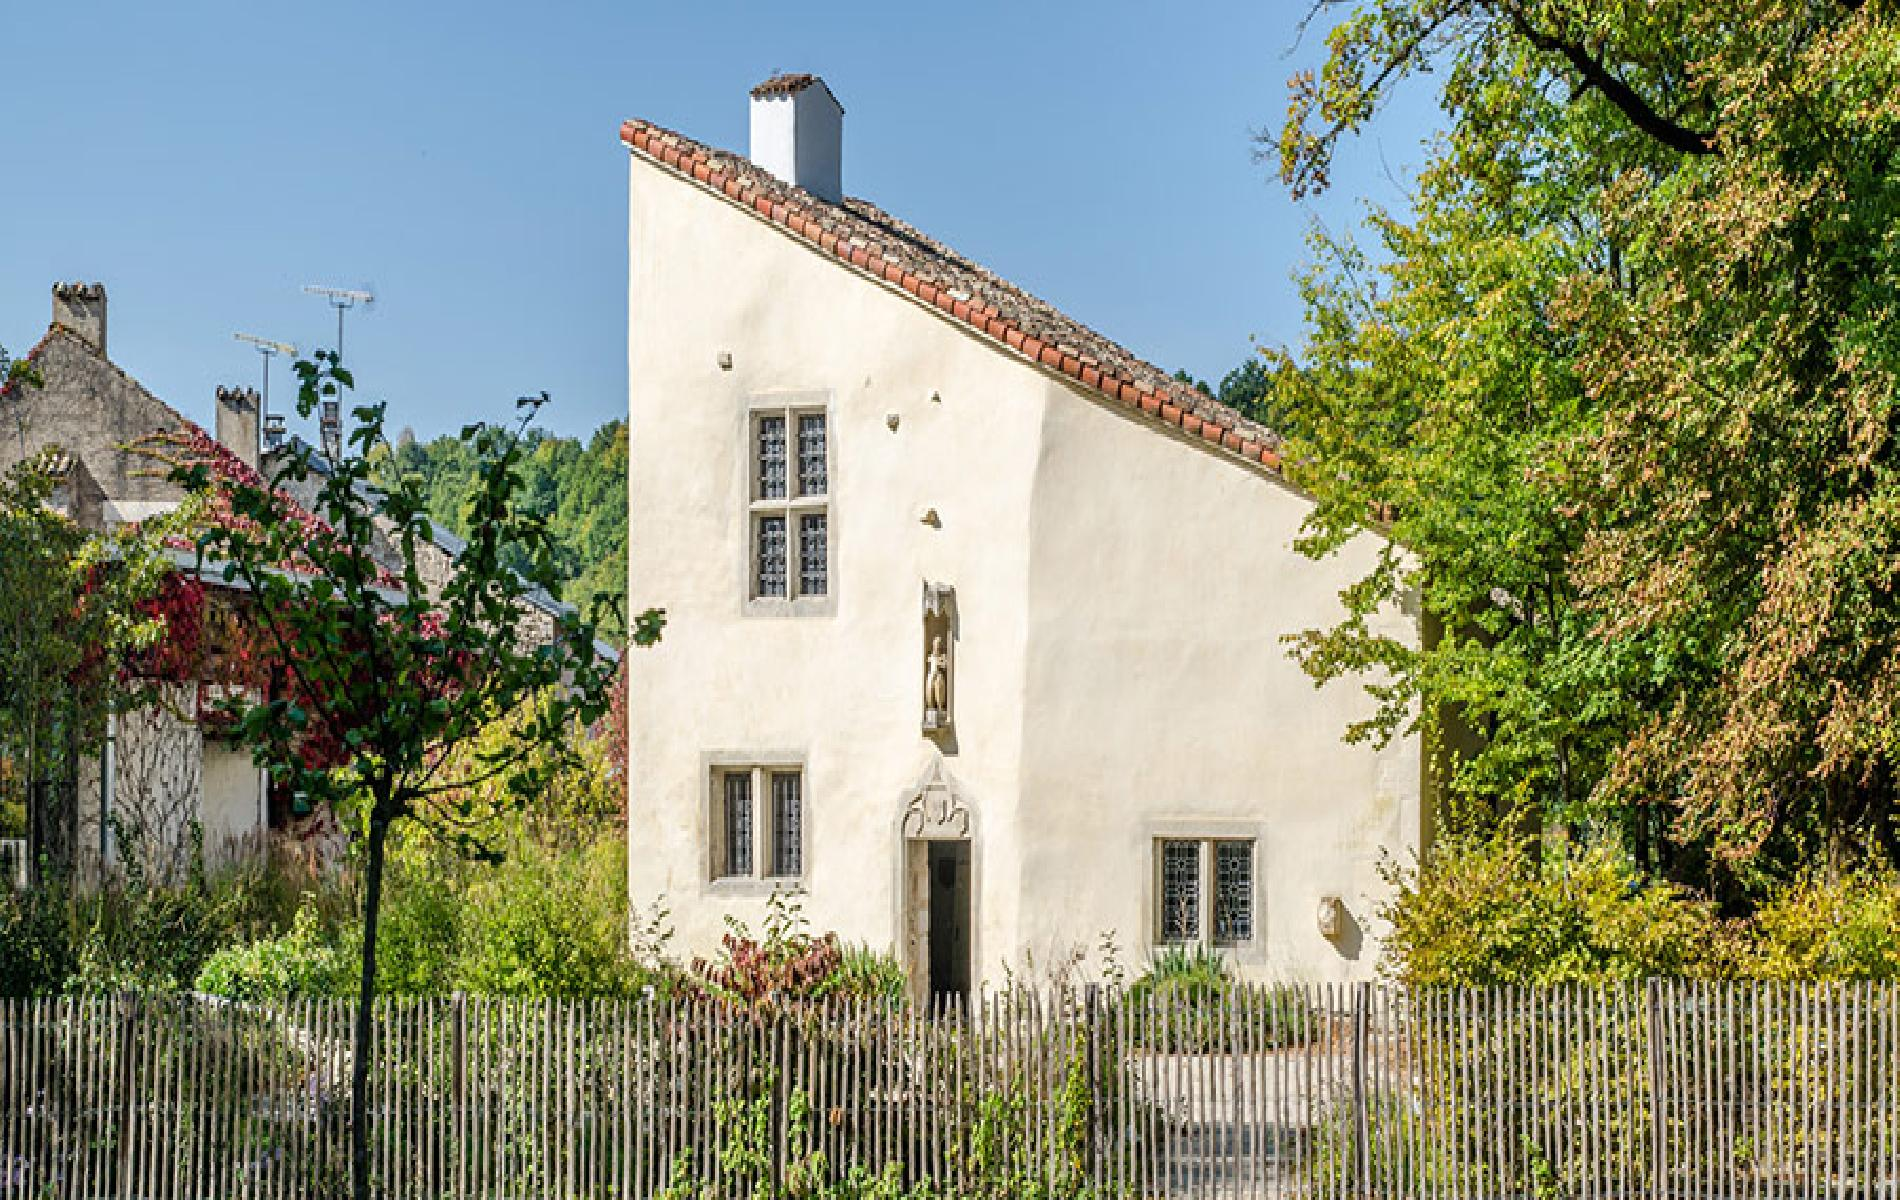 The house where Jeanne d'Arc was born in Domrémy la Pucelle and the basilica of Bois-Chenu